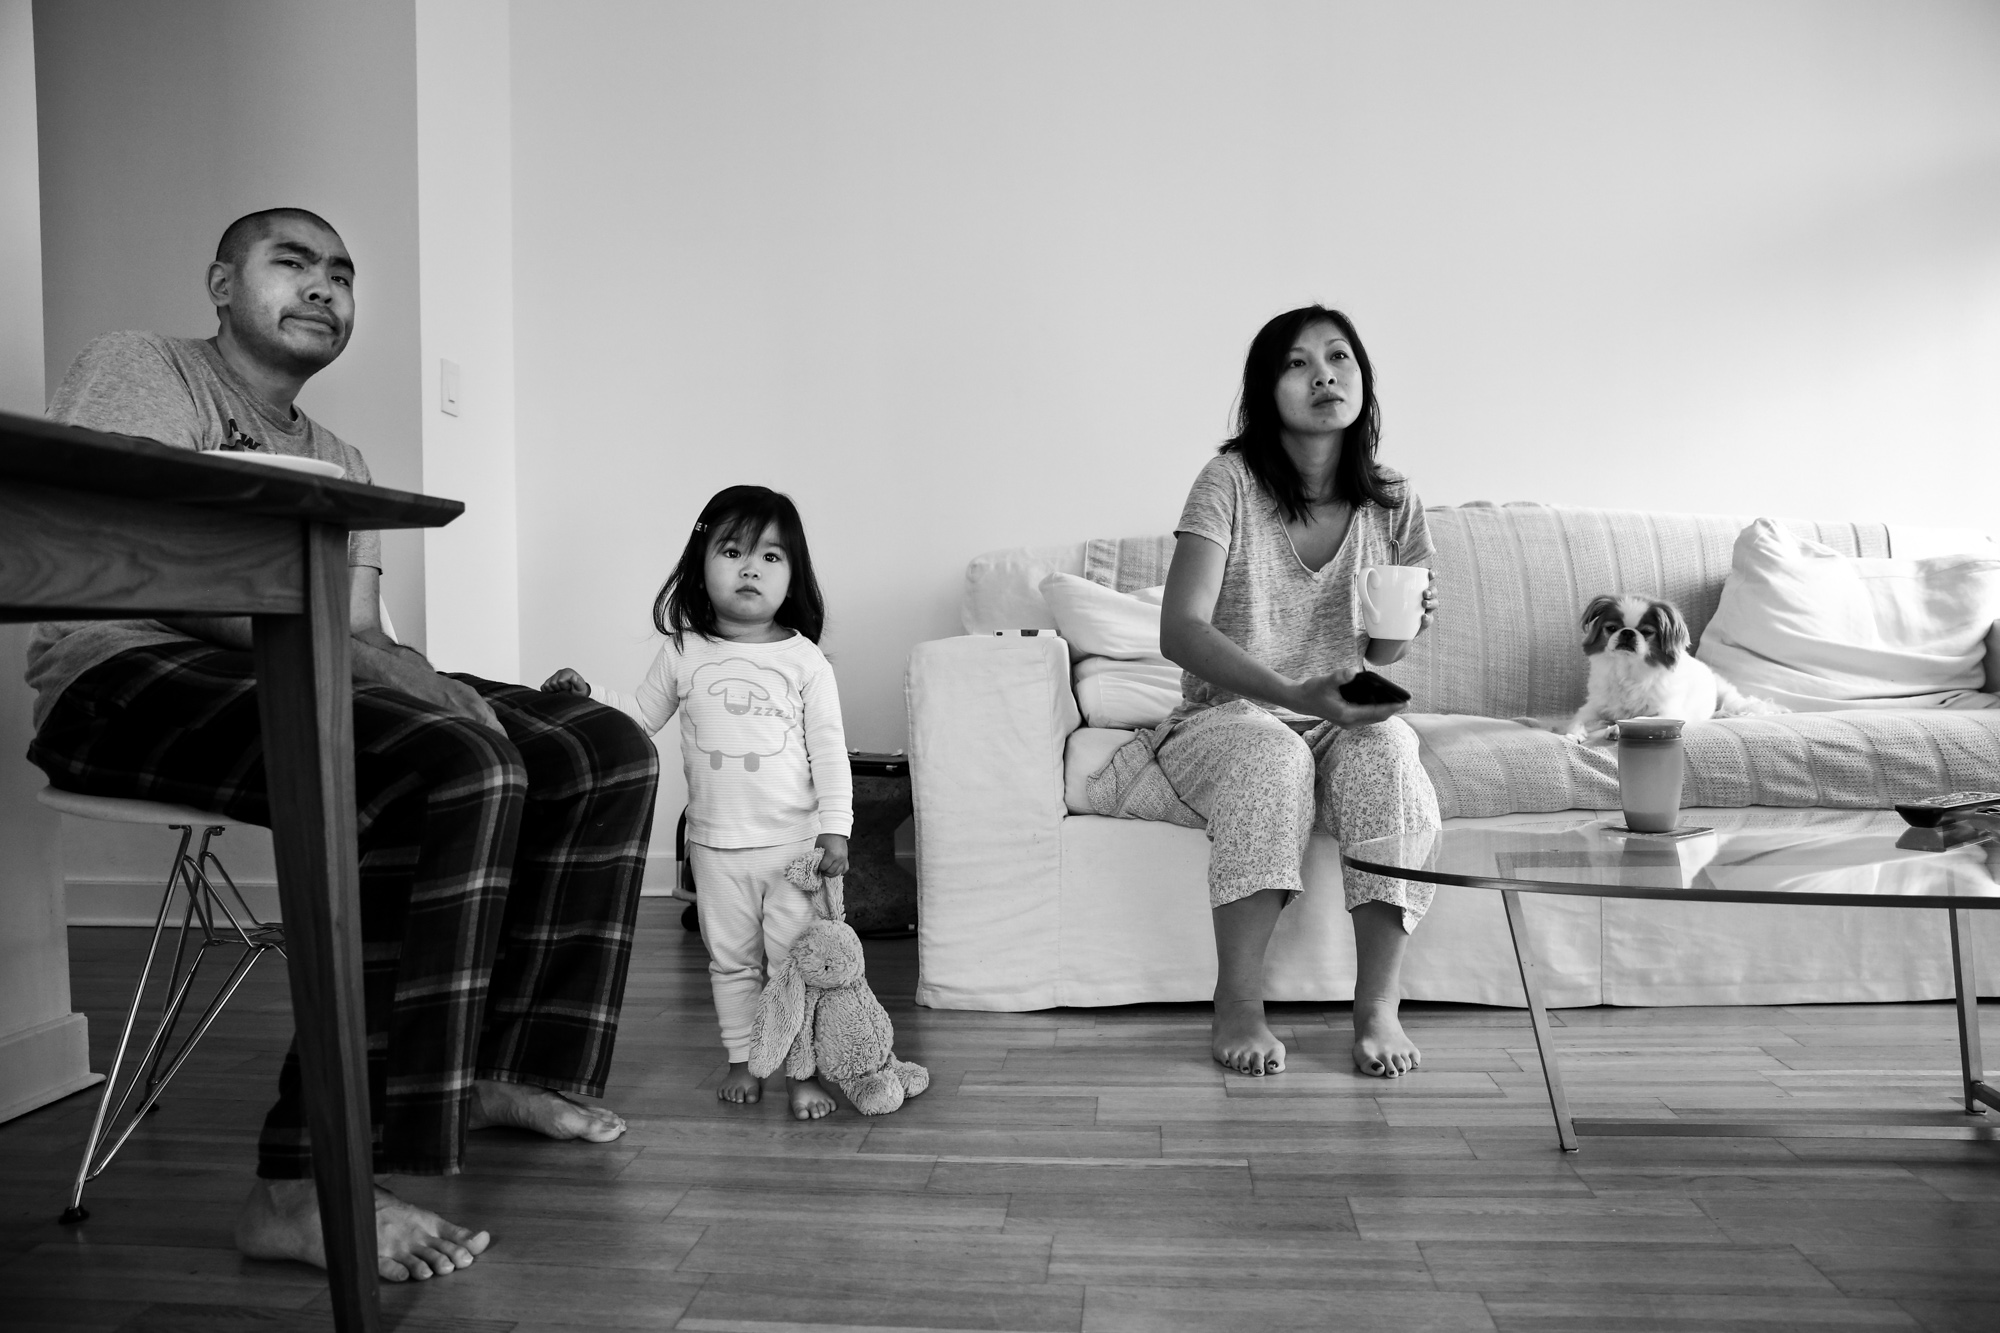 Man sits at table while child stands with stuffed bunny and woman sits on couch with dog